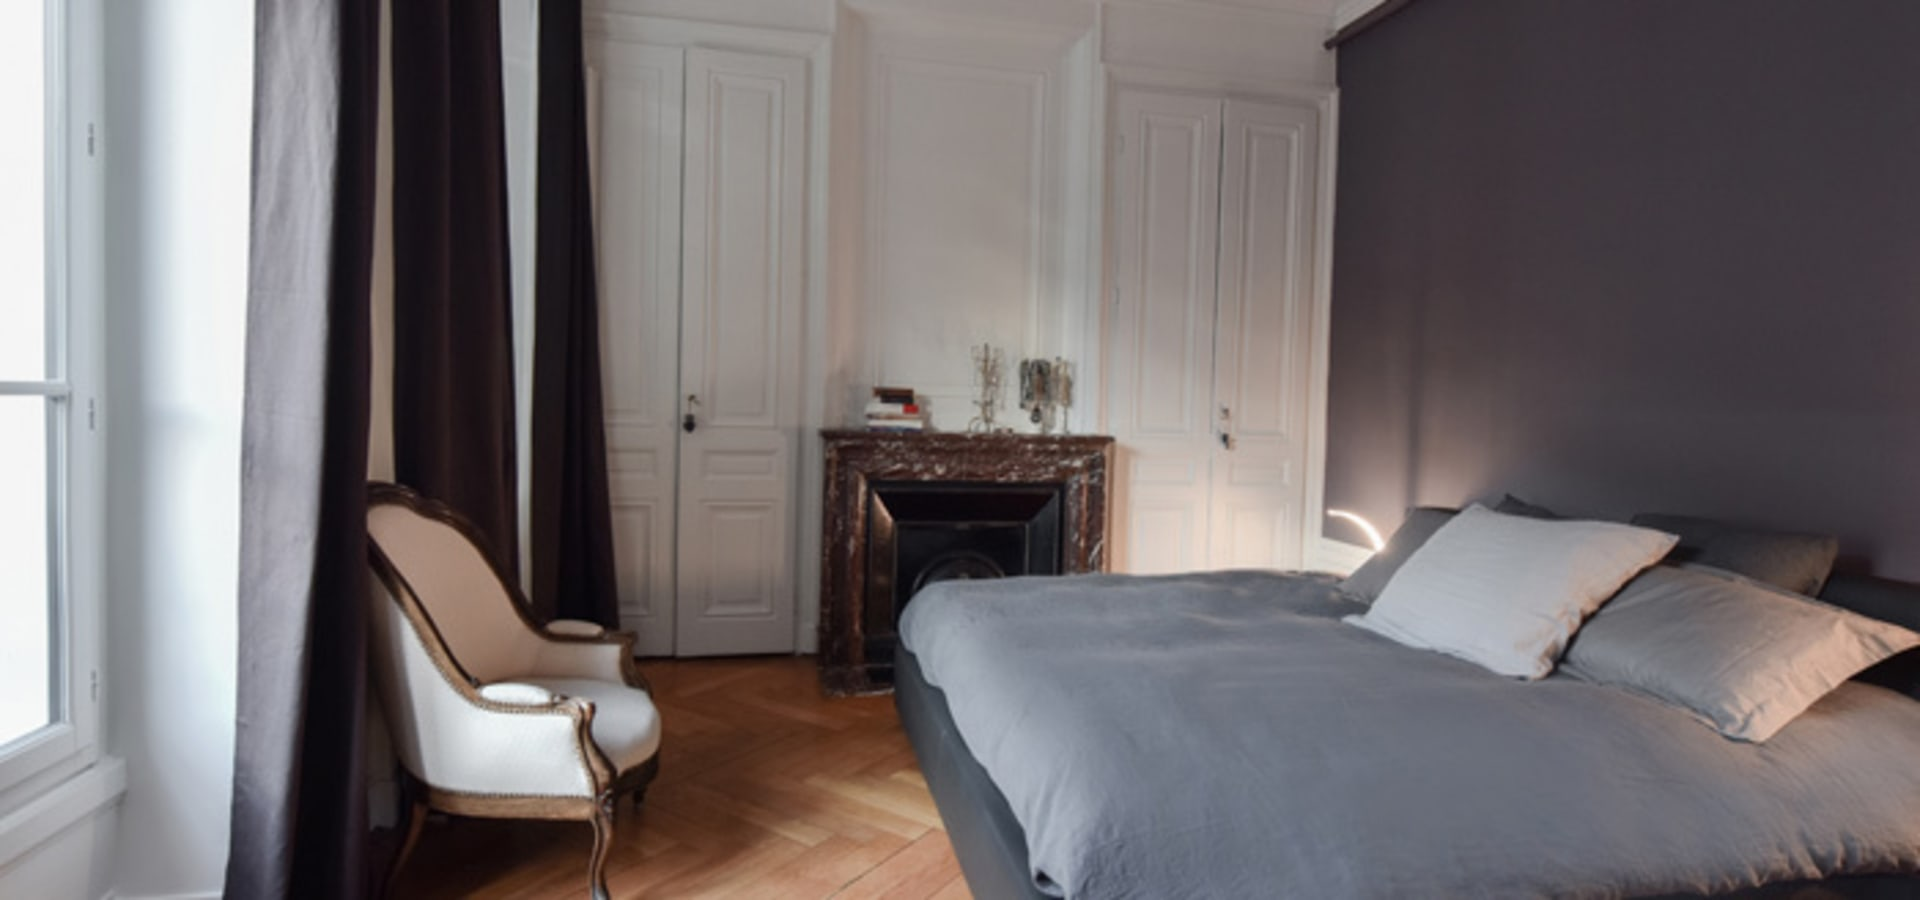 marion lano architecte d 39 int rieur salle de bain lentilly homify. Black Bedroom Furniture Sets. Home Design Ideas